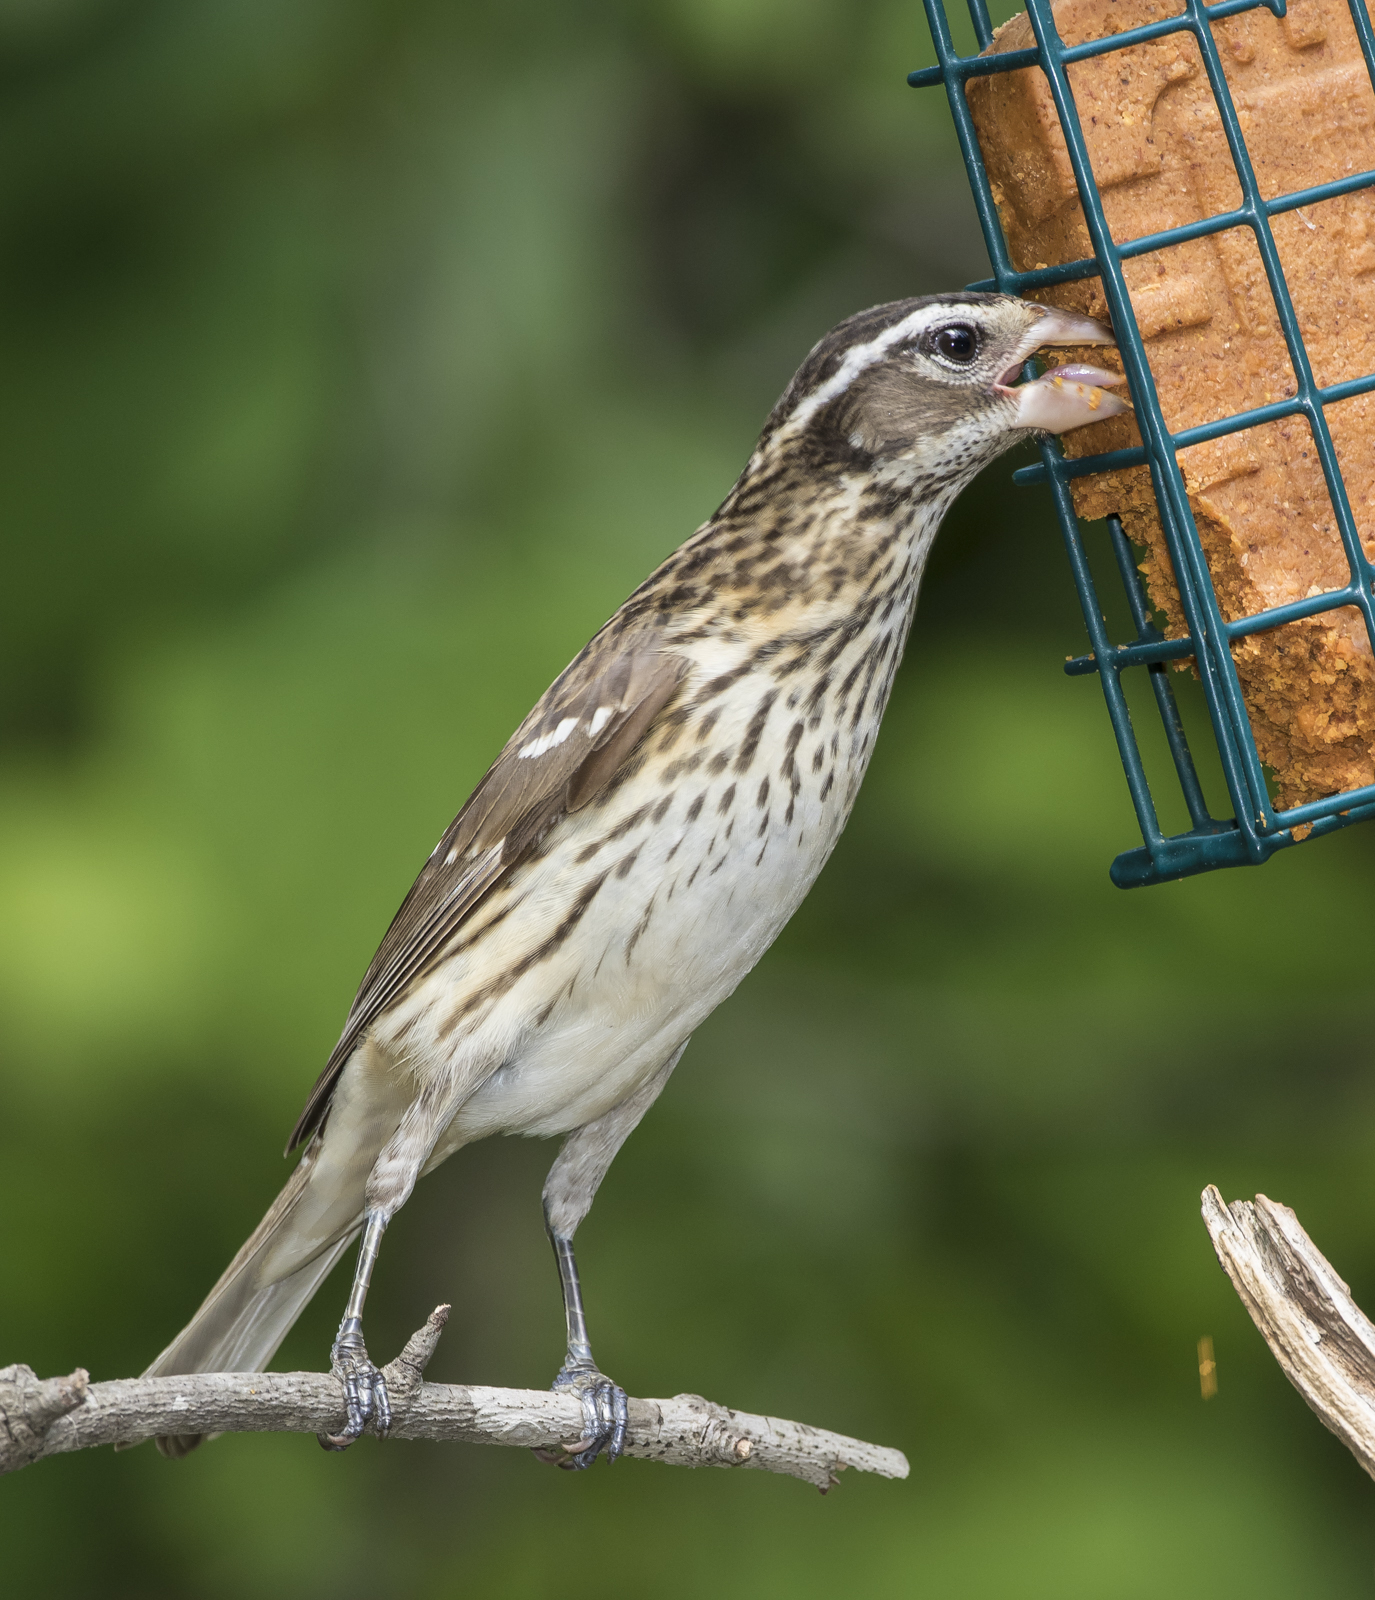 Rose-breasted grosbeak ifemale at suet